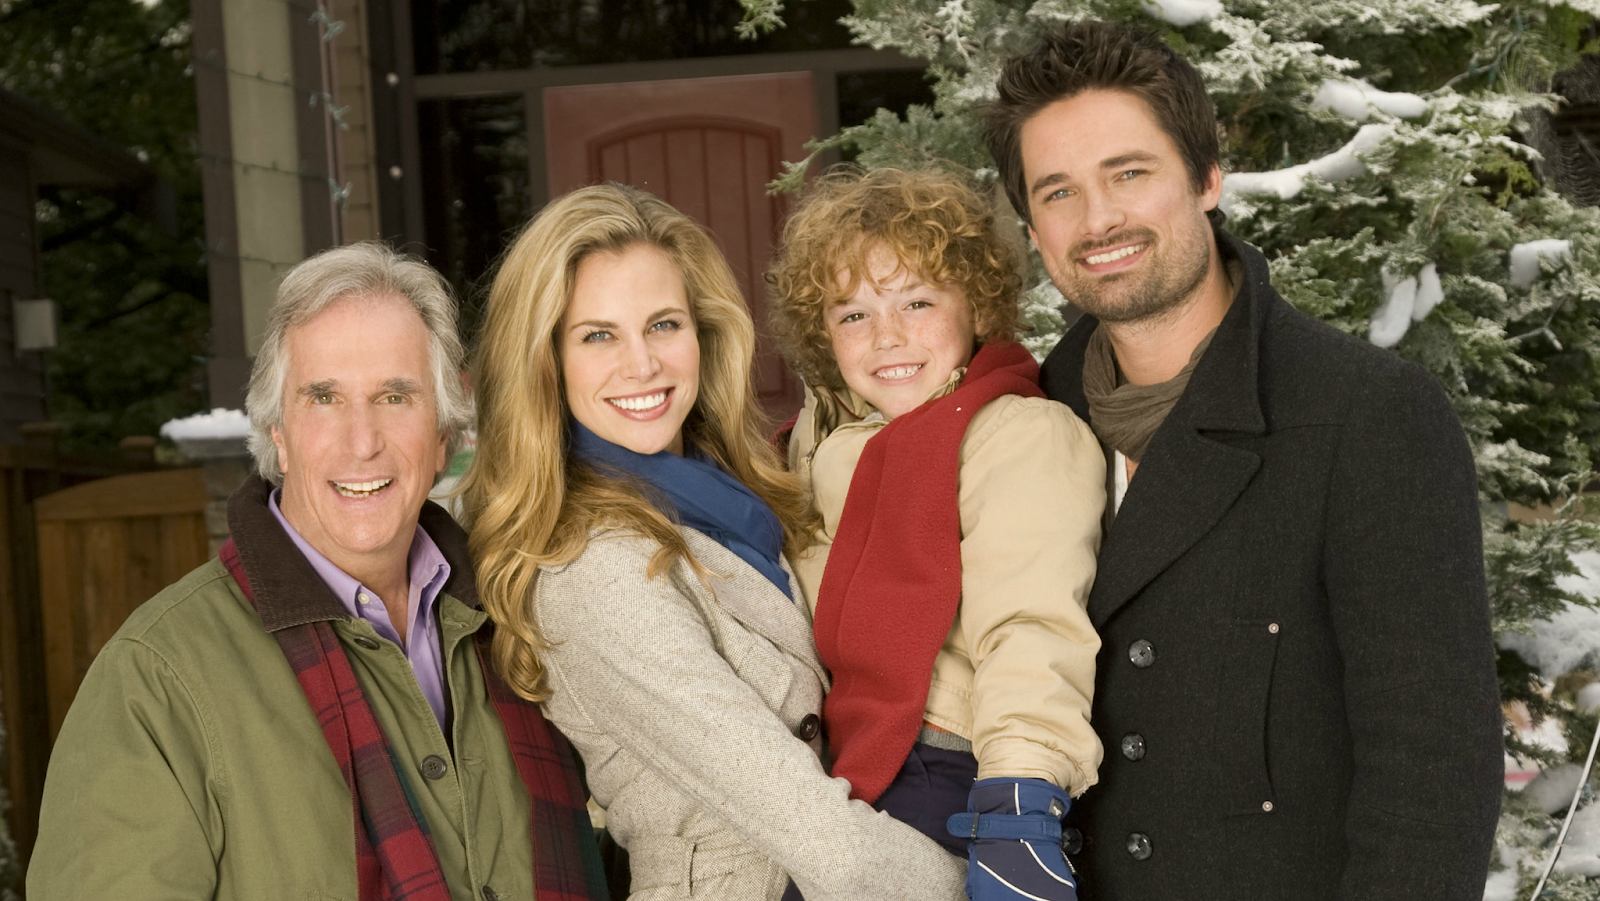 The Most Wonderful Time of the Year Henrey Winkler Uncle Ralph Brooke Burne Jennifer Cullen Connor Christopher Levins Brian Cullen Warren Christie Morgan Derby Hallmark